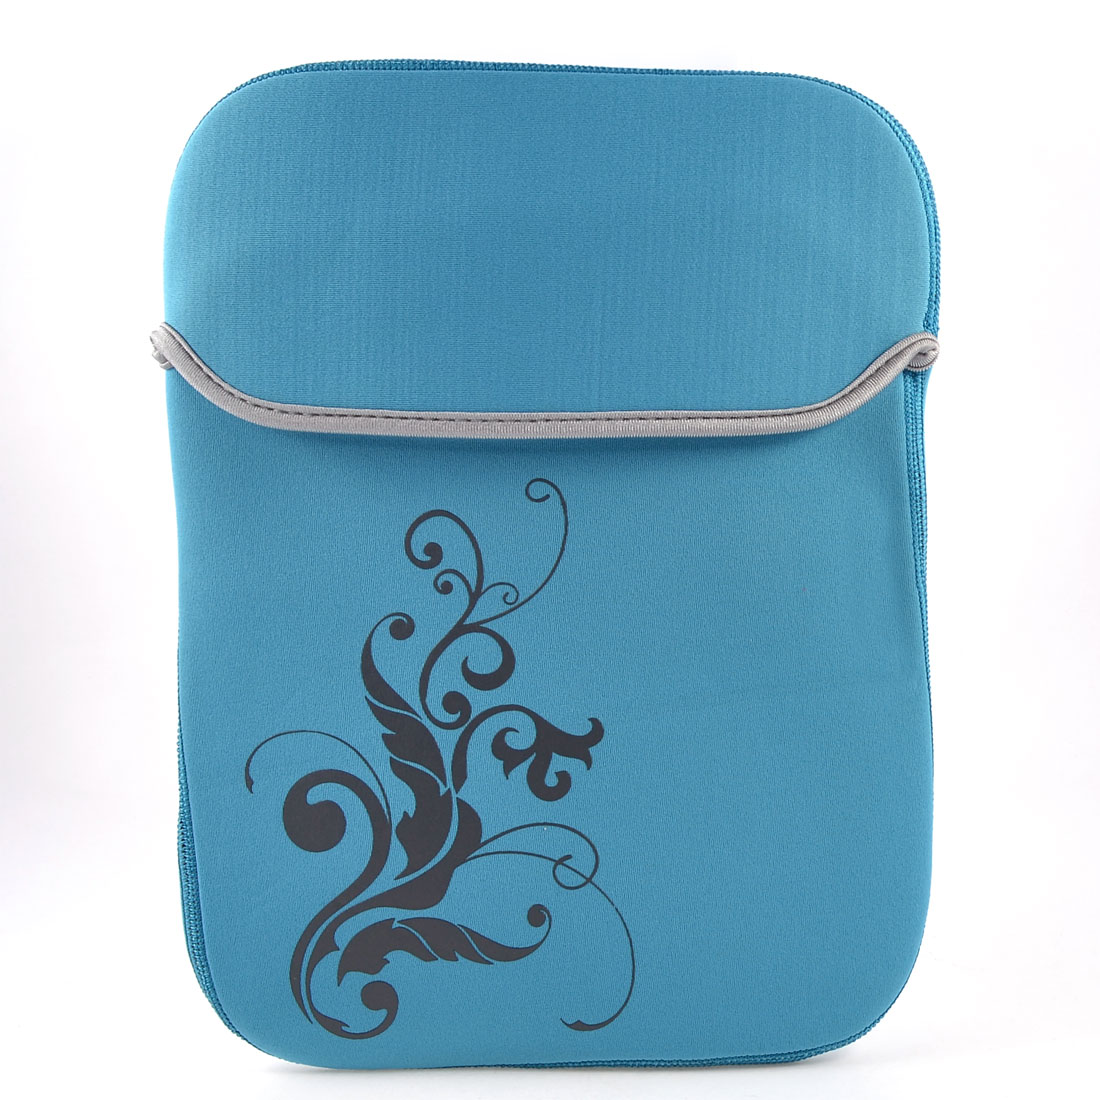 "11.6"" 12"" Tablet Laptop Flower Pattern Sky Blue Neoprene Sleeve Bag Case Pouch"